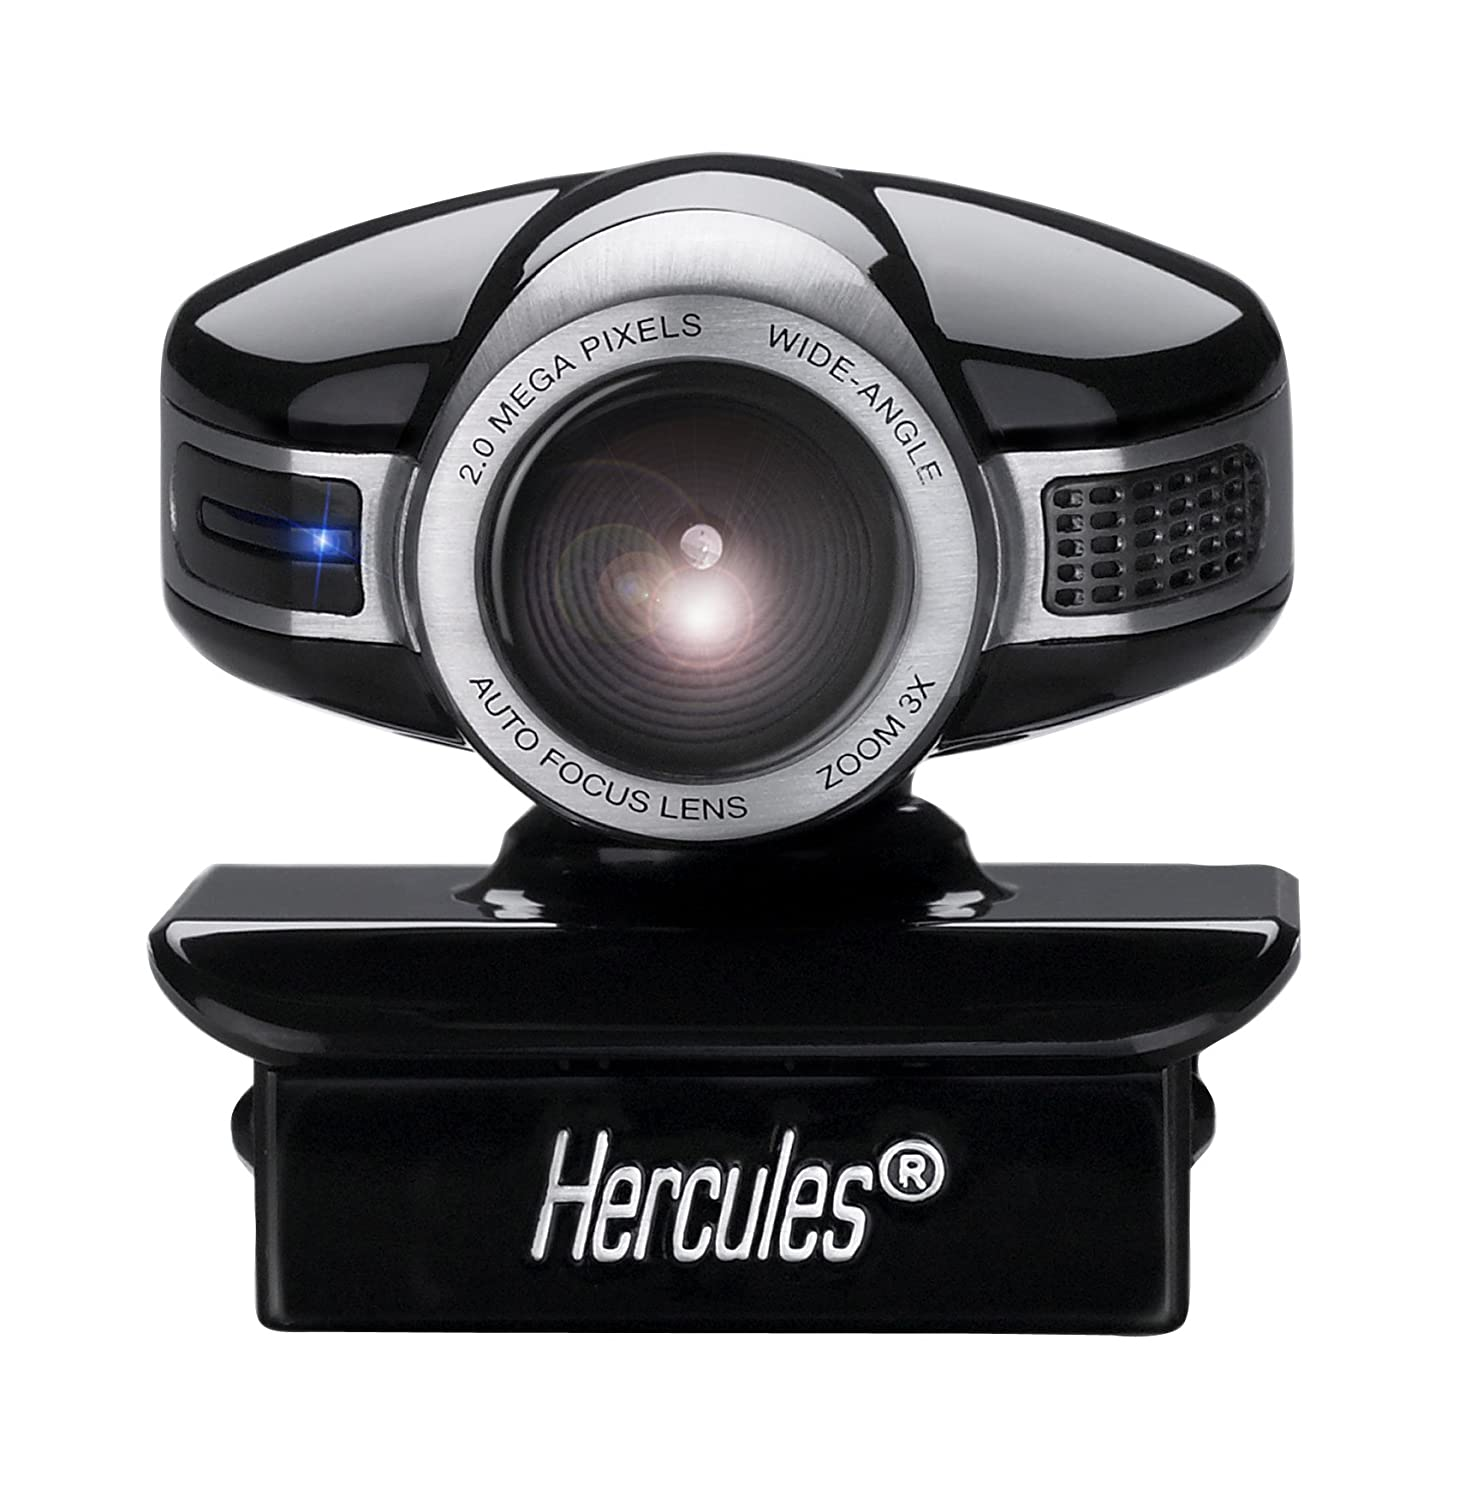 HERCULES DUALPIX CHAT AND SHOW WEBCAM WINDOWS 7 64BIT DRIVER DOWNLOAD